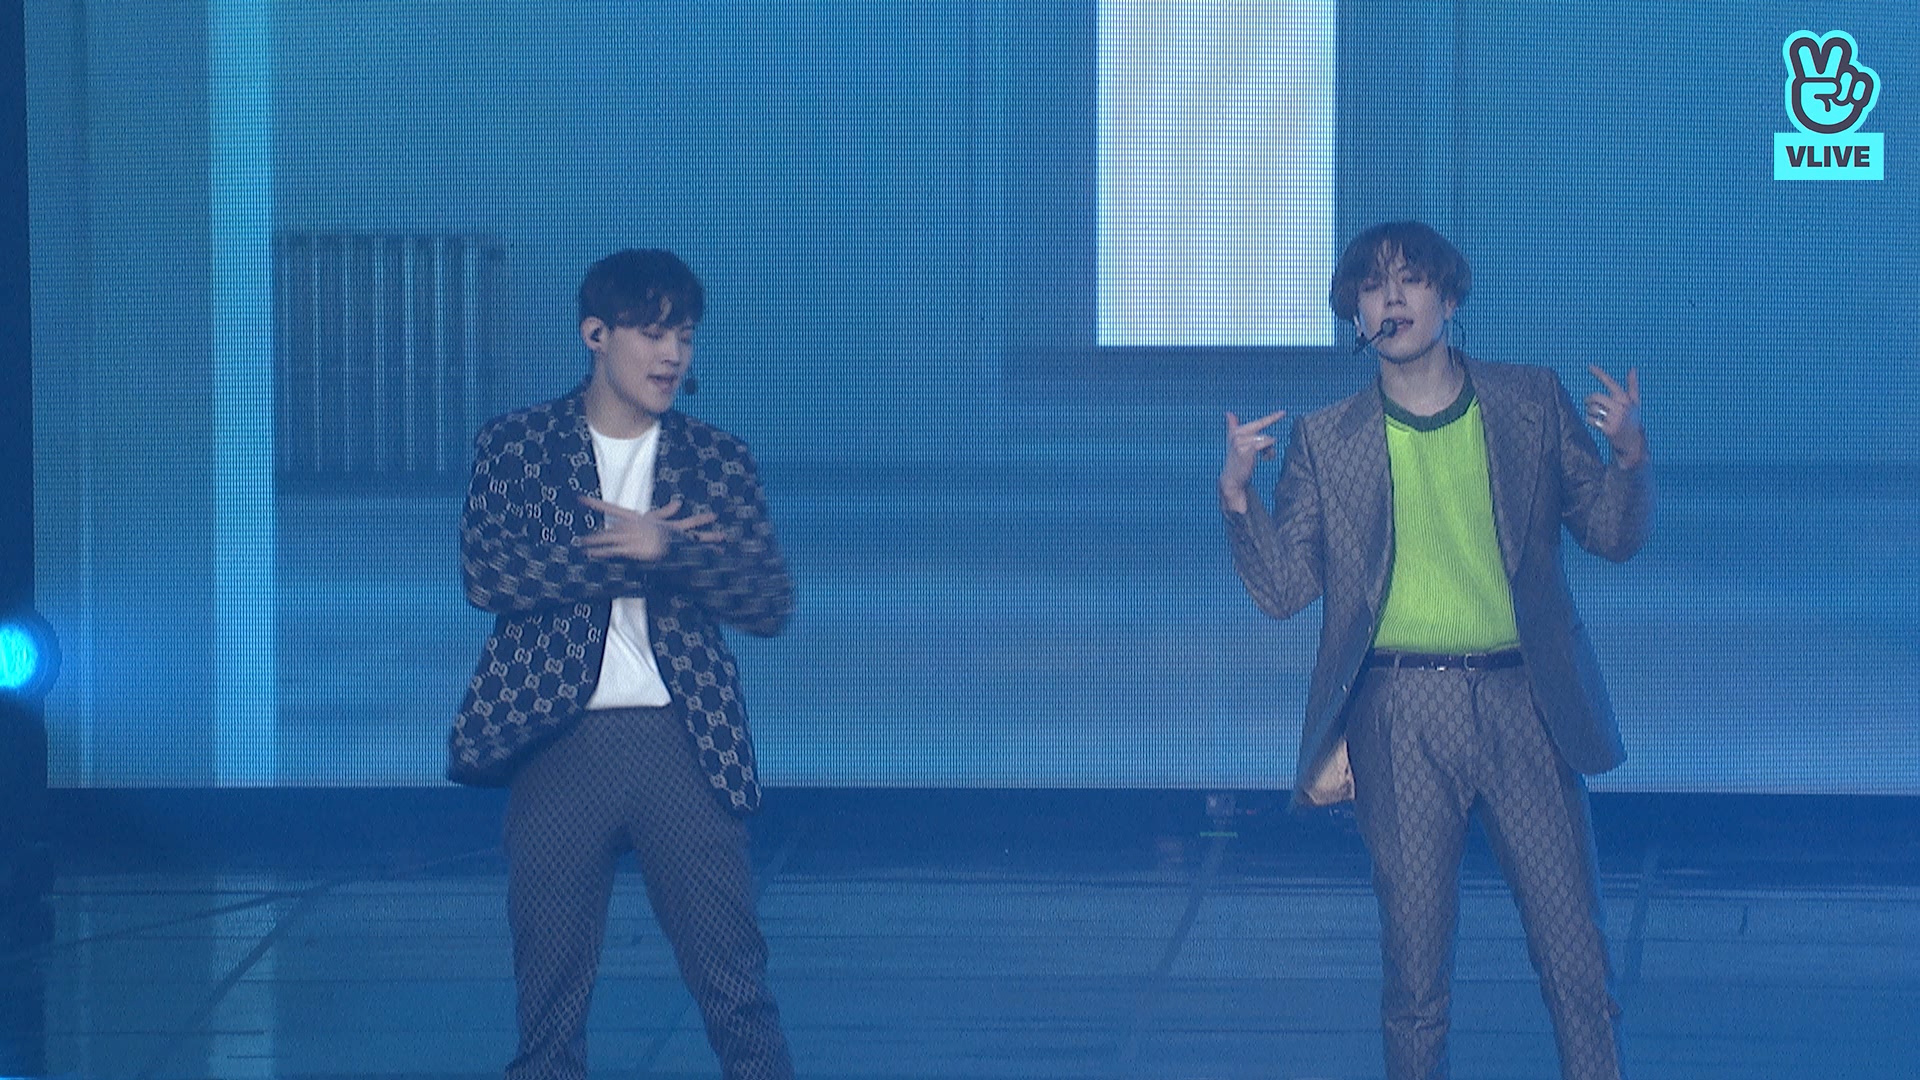 """Jus2 """"FOCUS ON ME"""" - Jus2 <FOCUS> LIVE PREMIERE with V LIVE"""